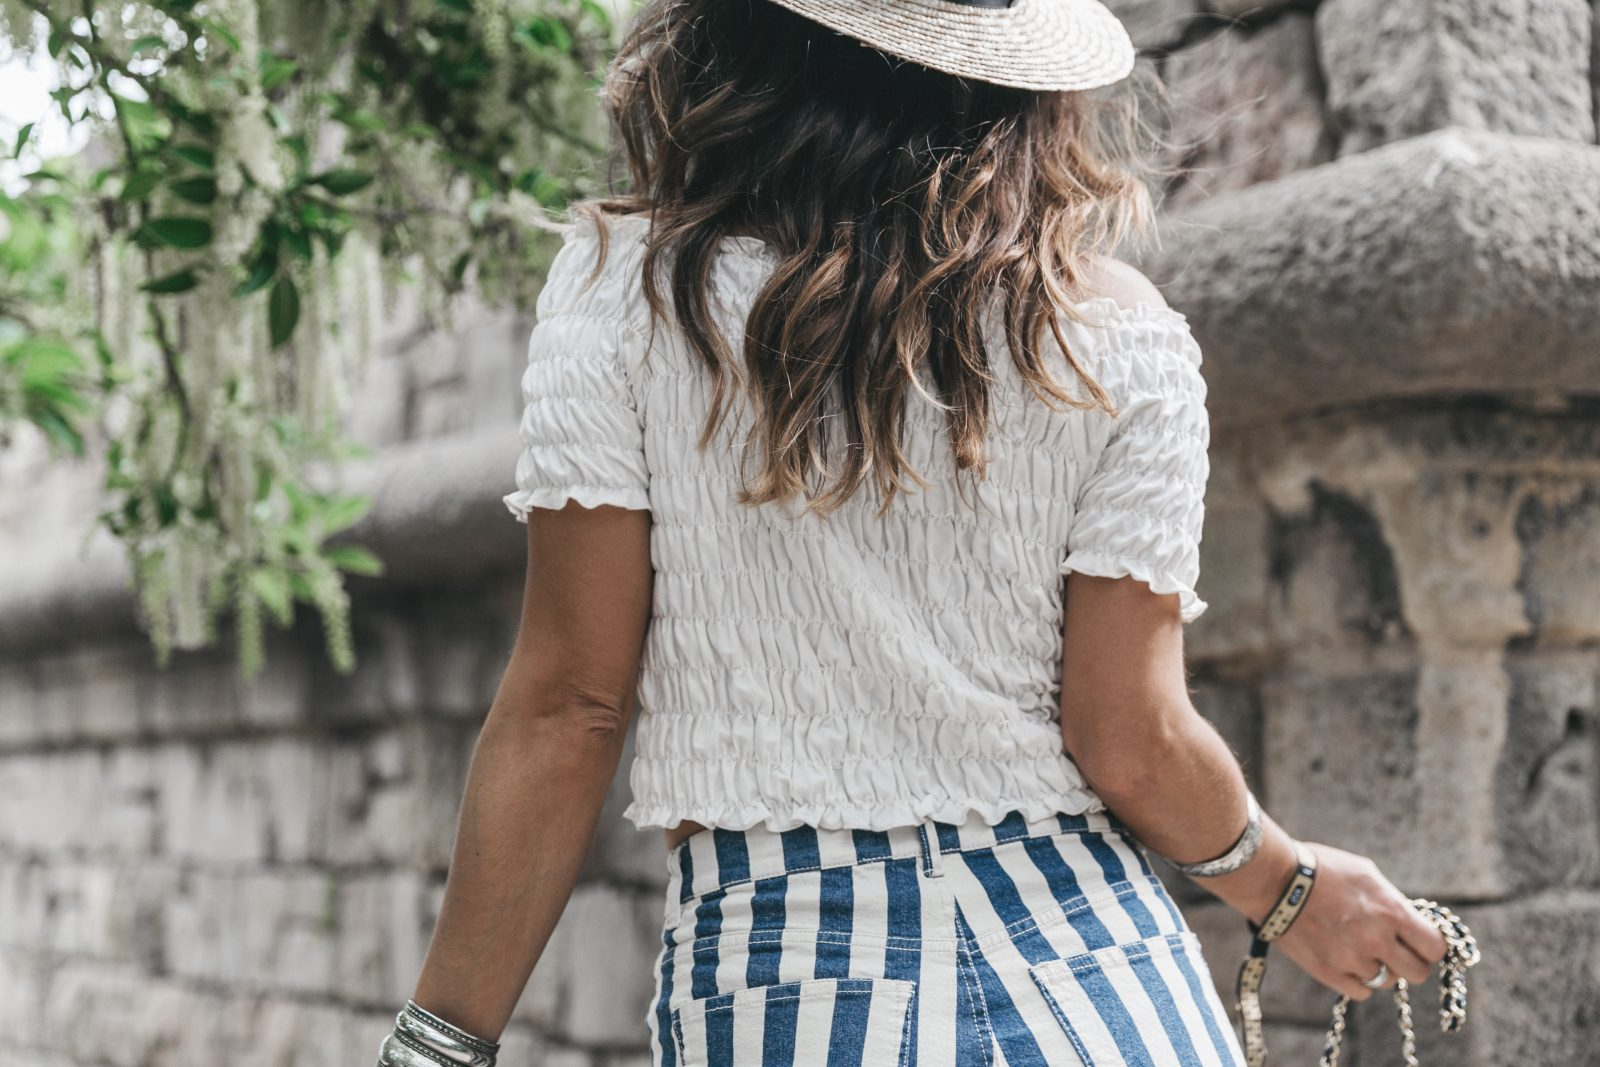 Primavera_Sound-HM-Stripped_Shorts-Canotier-Hat-Espadrilles-Outfit-Summer-Collage_Vintage-27